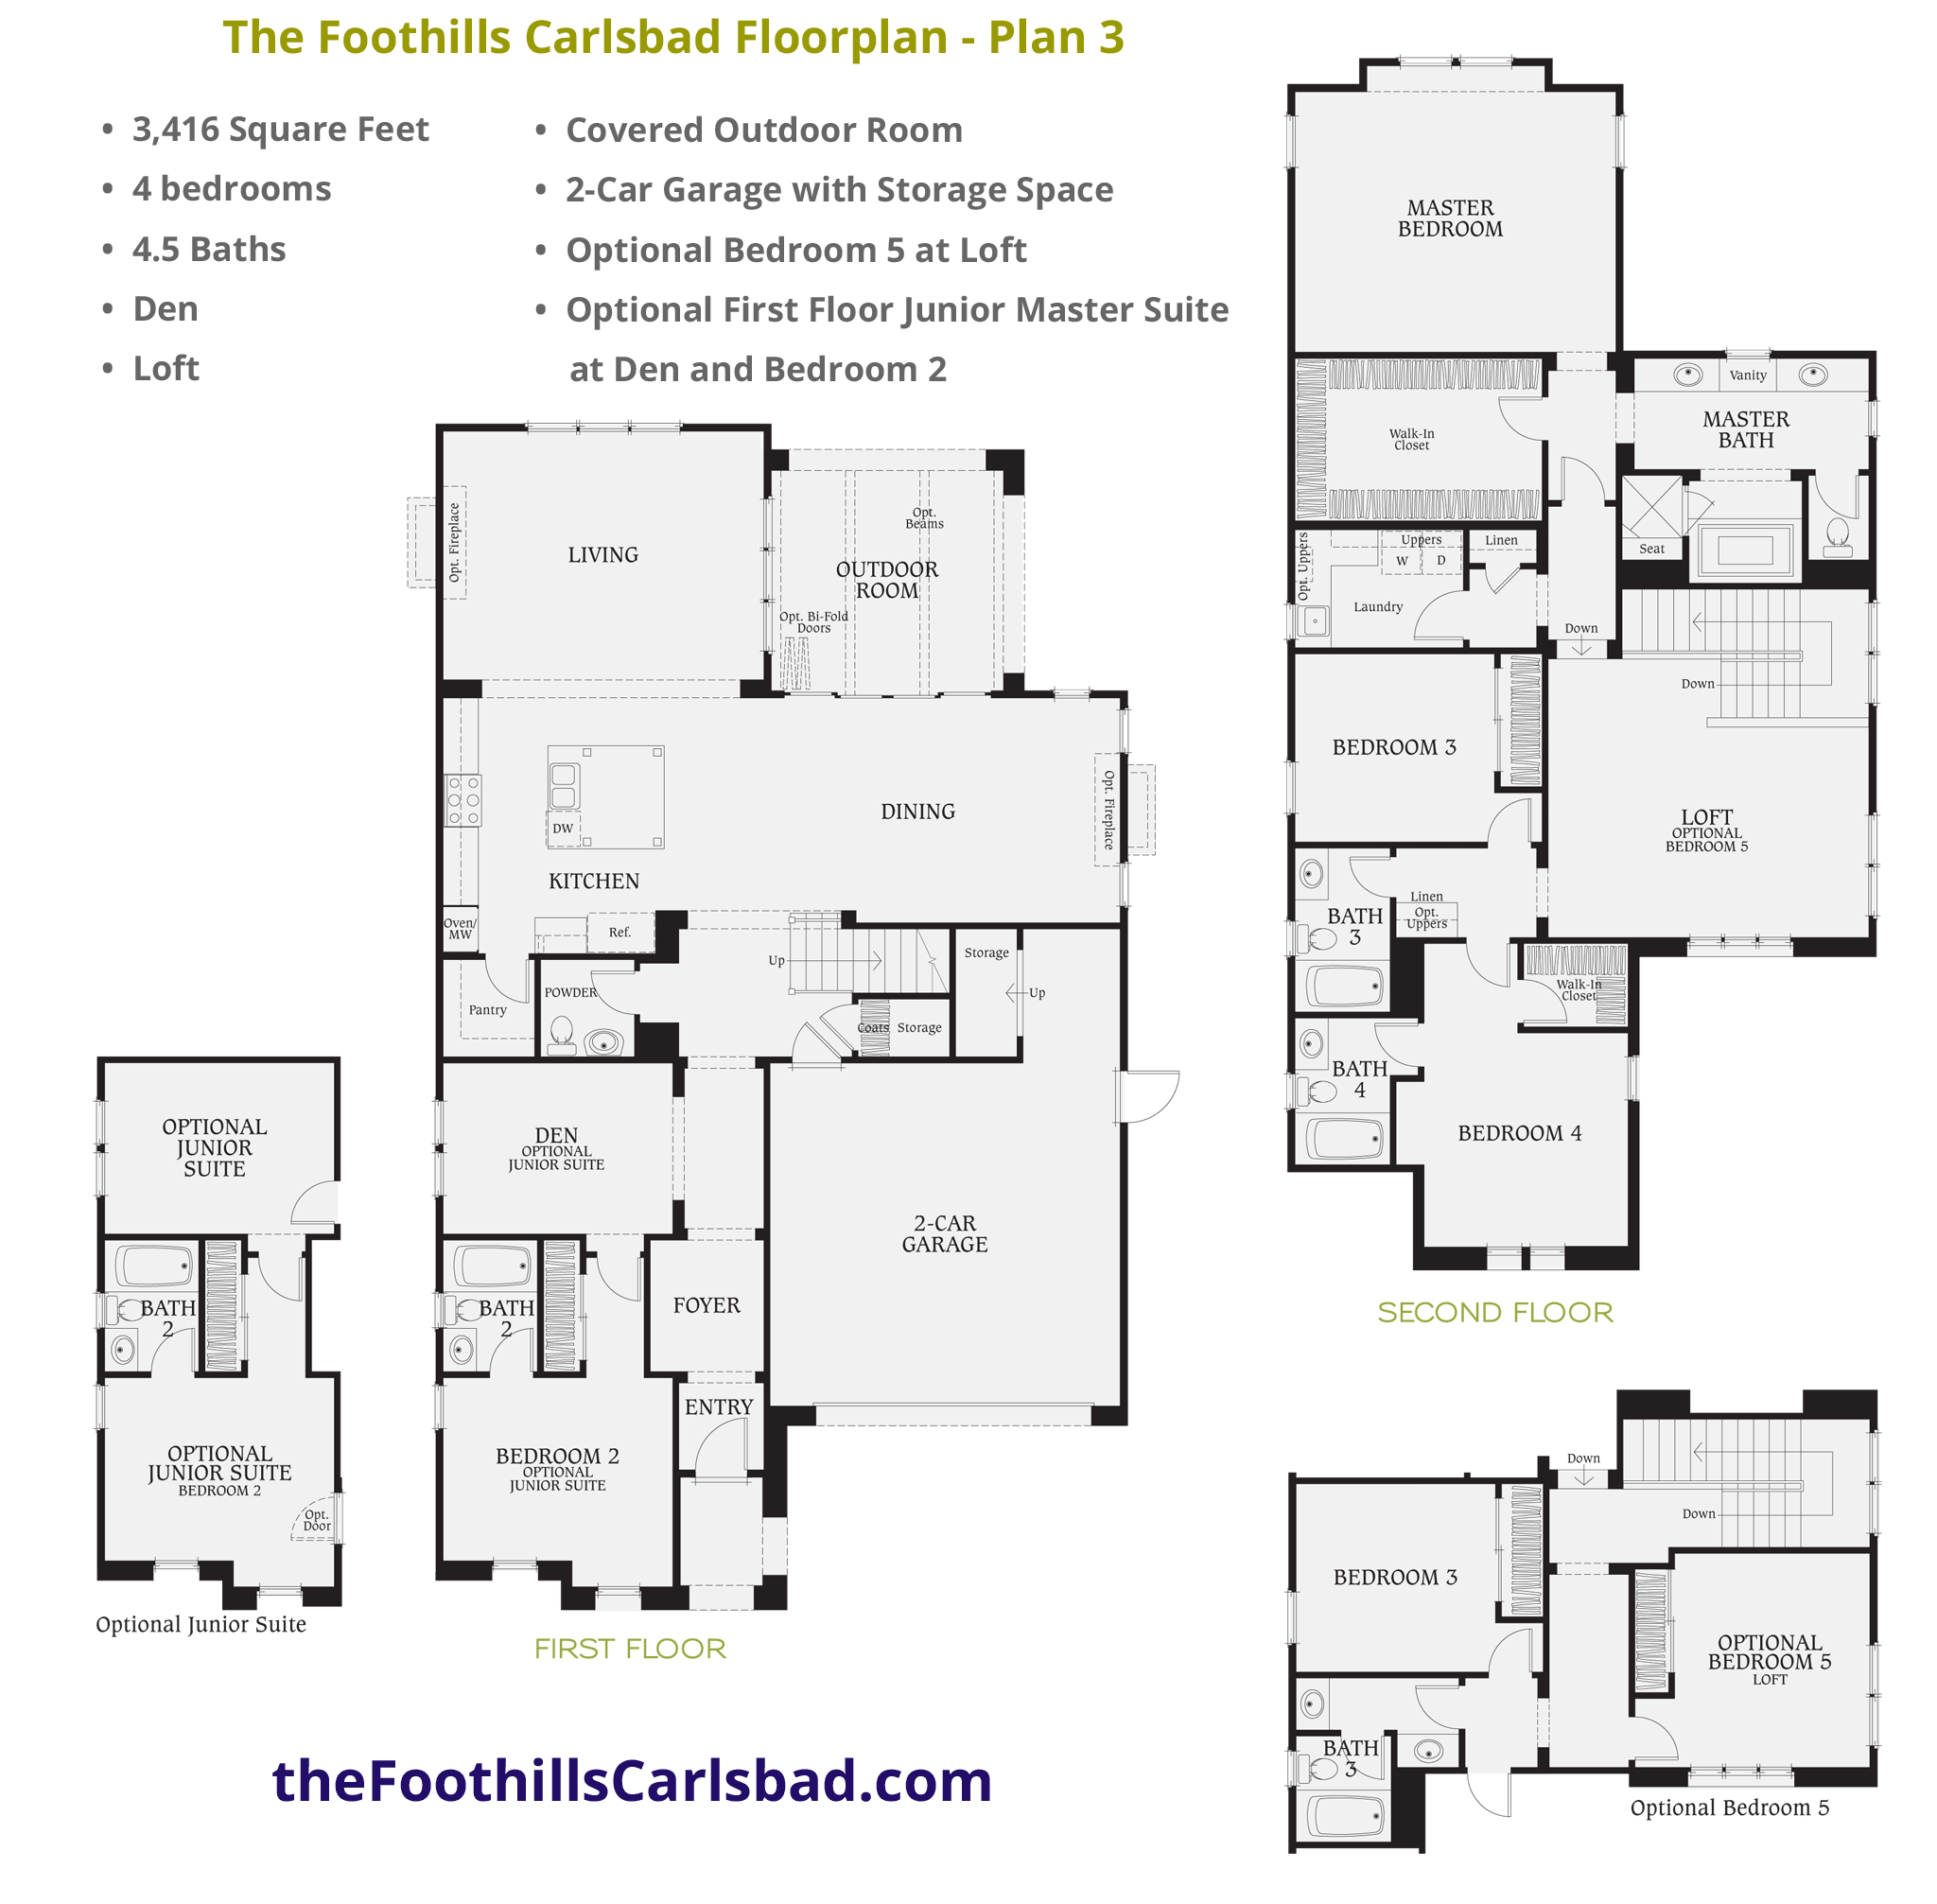 plan 3 4 bed 45 bath 3416 square feet - Brookfield Homes Floor Plans